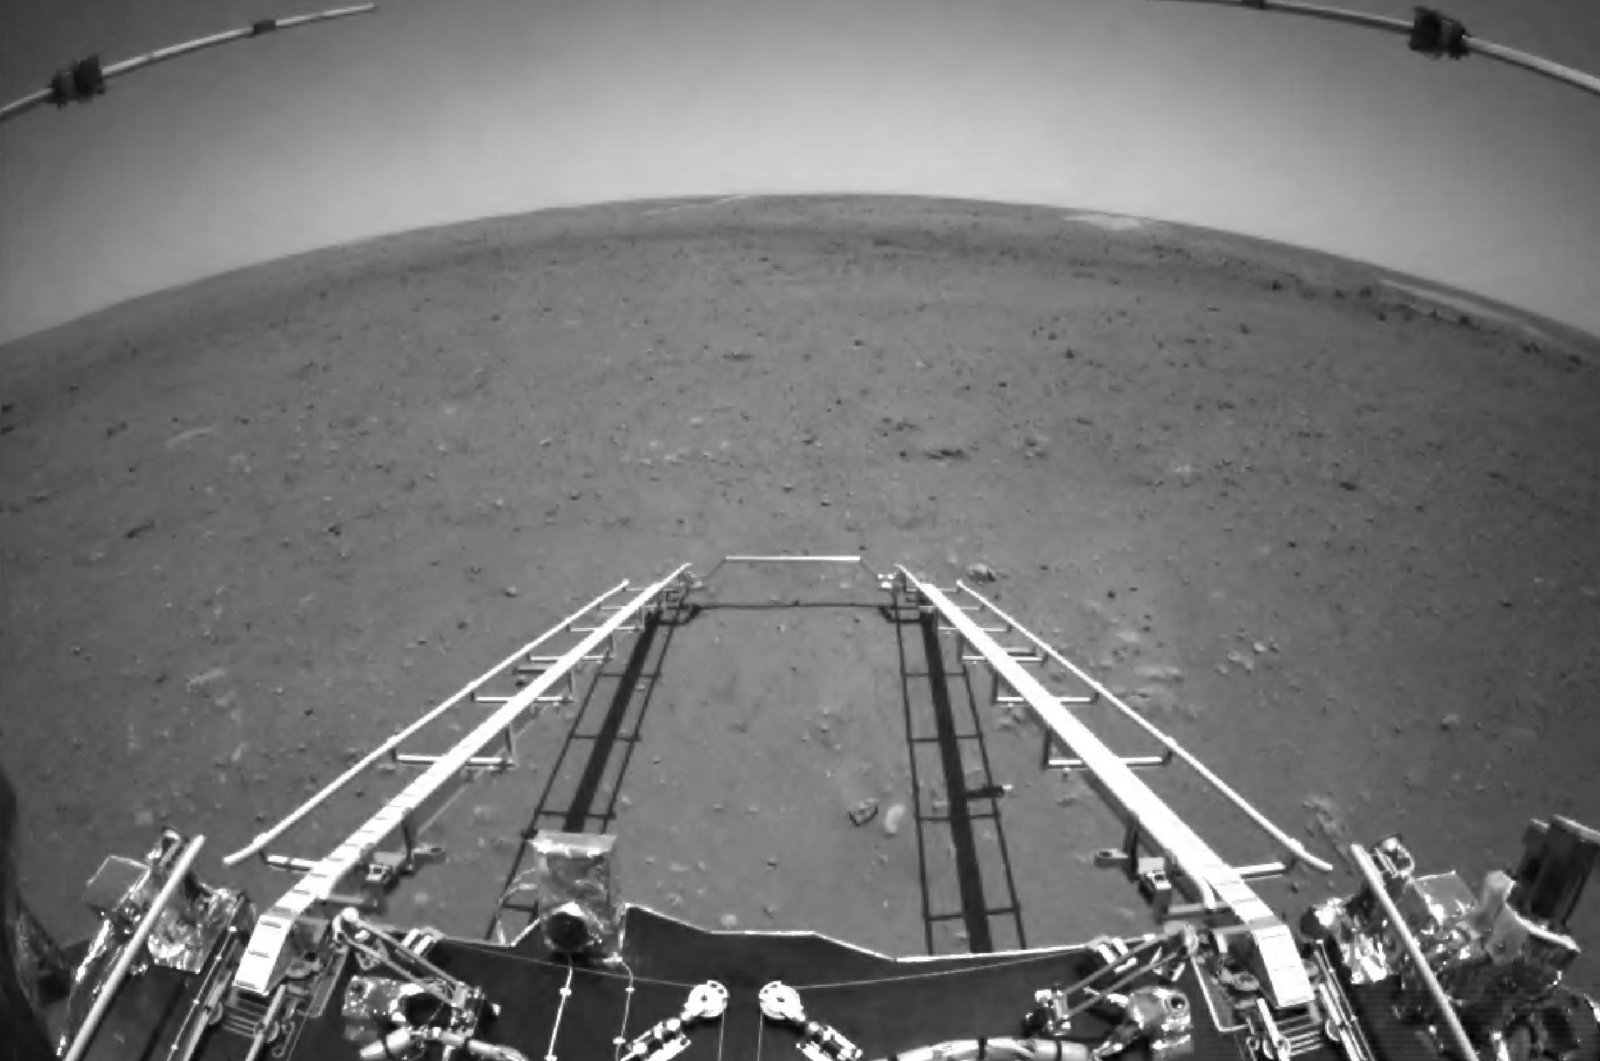 This picture released on May 19, 202 by the China National Space Administration (CNSA) via CNS shows an image taken by the Zhurong rover on the surface of Mars. (AFP Photo)